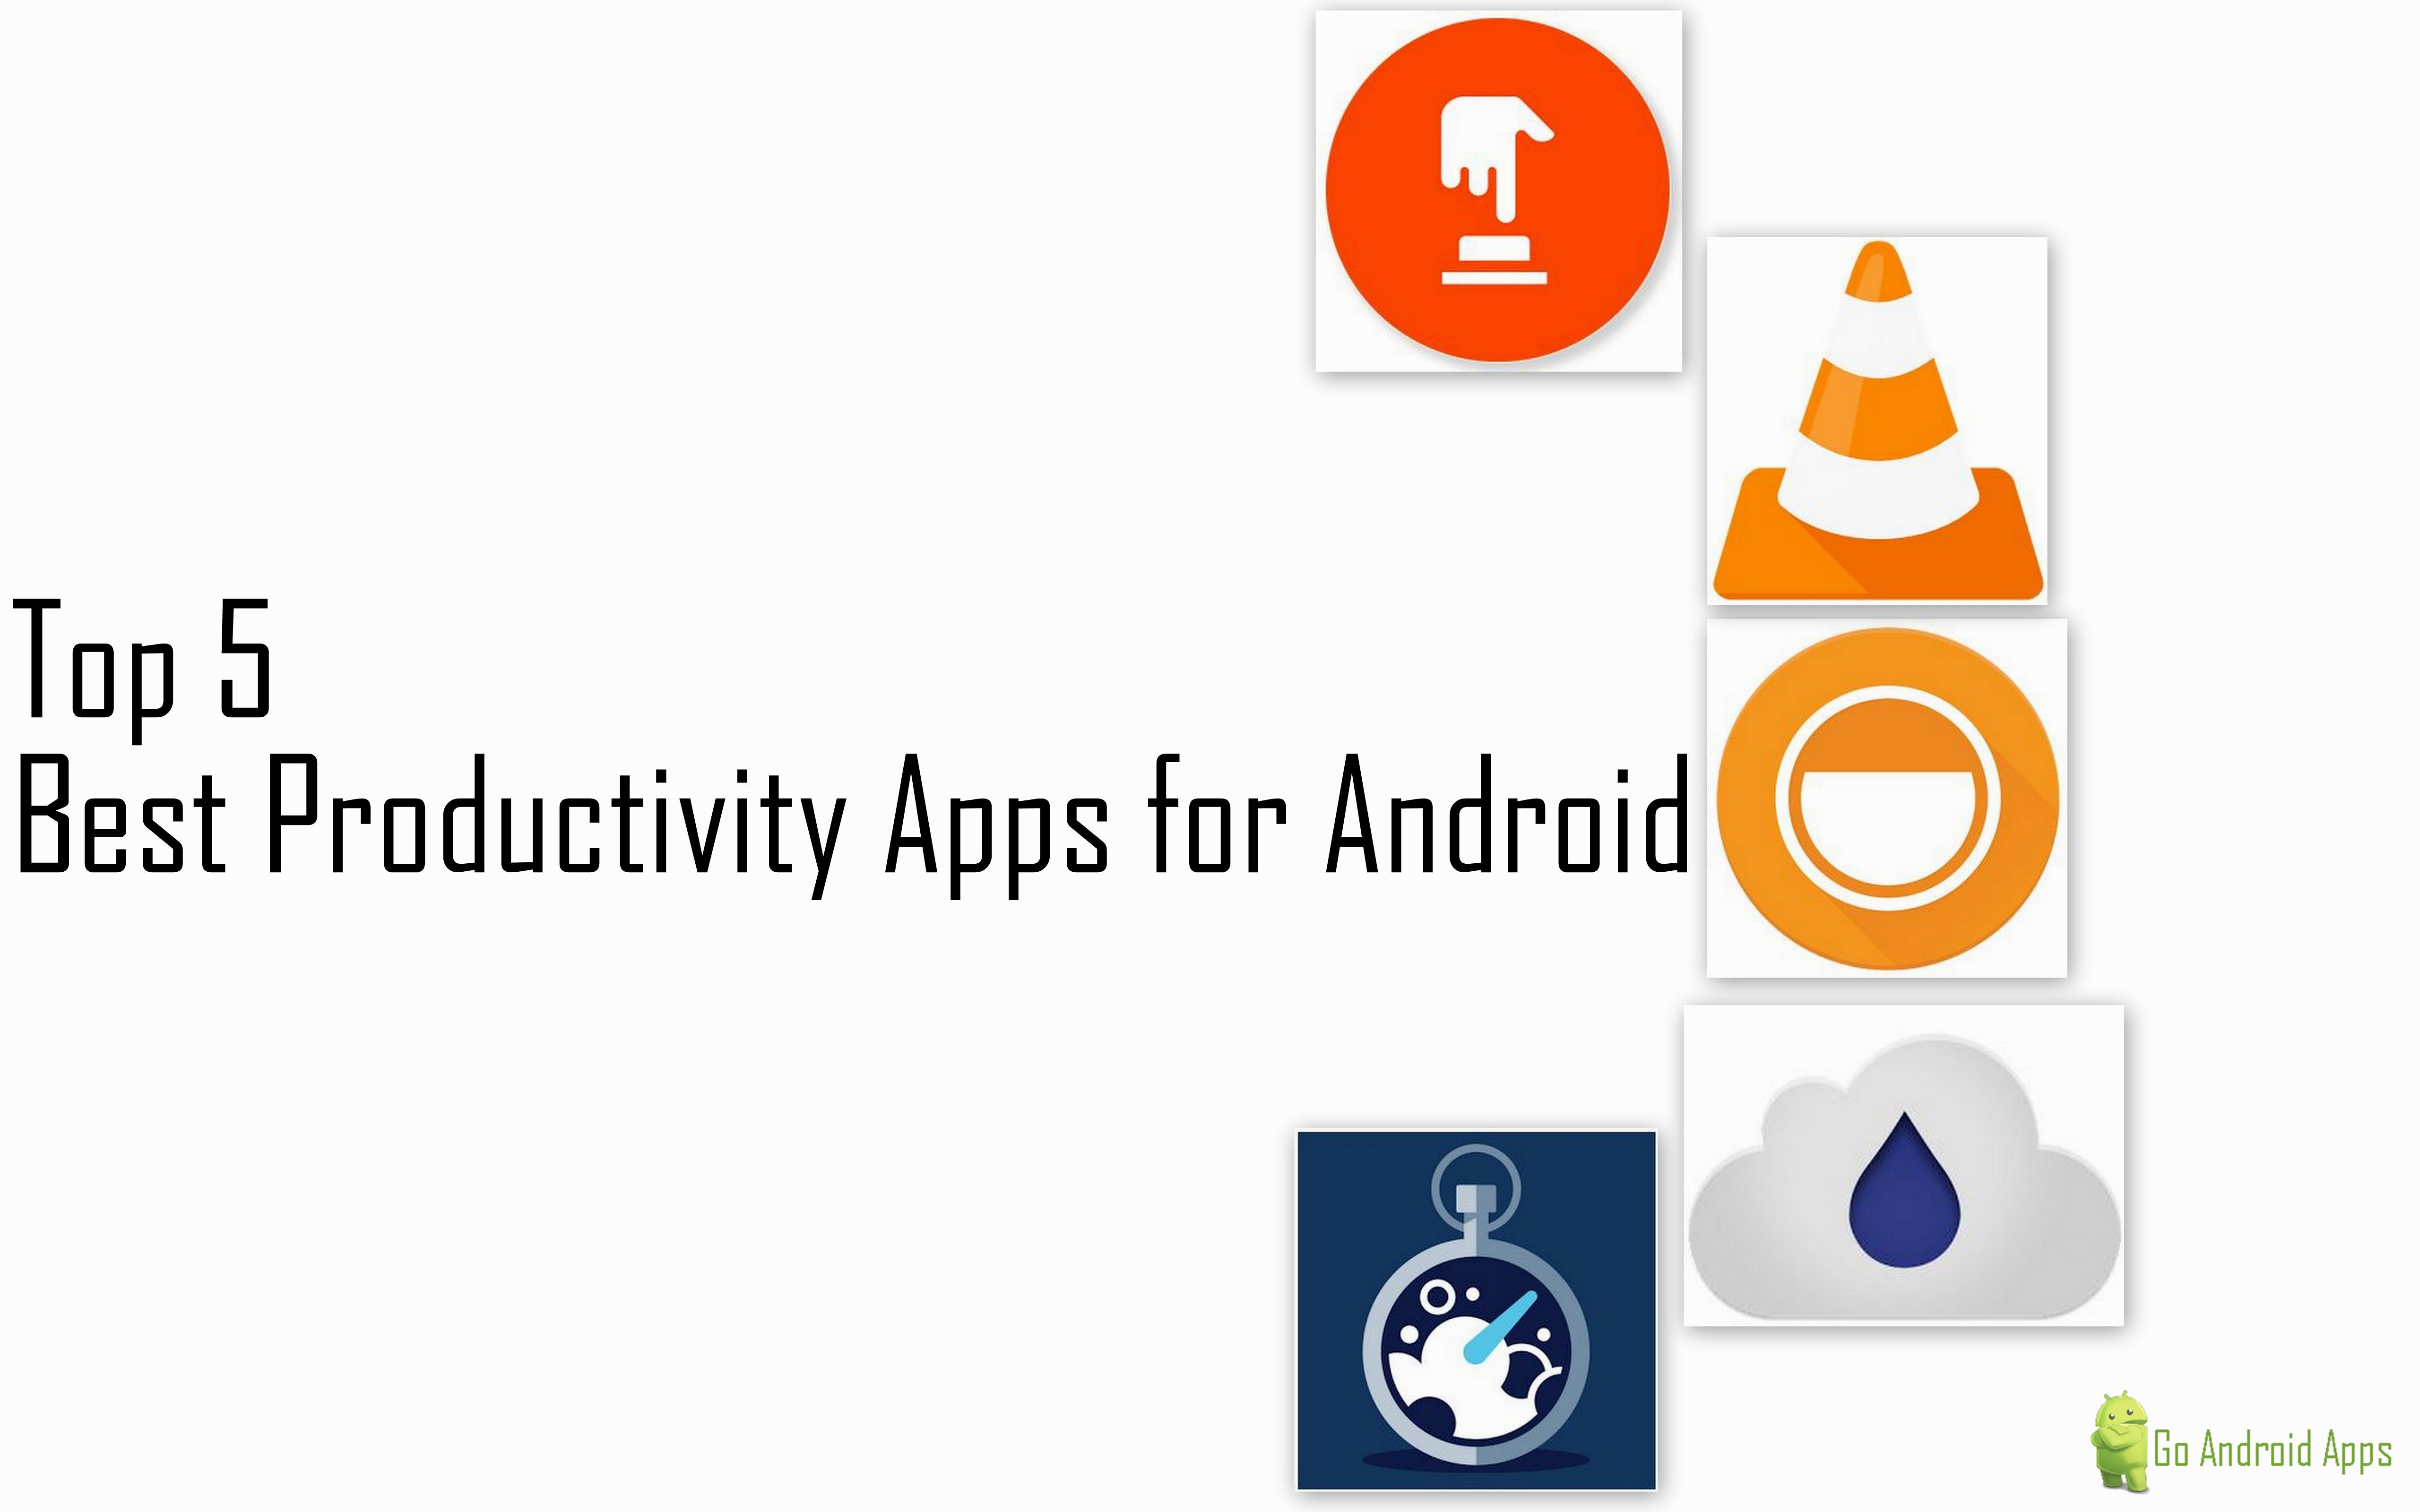 Top 5 Best Productivity Apps for Android